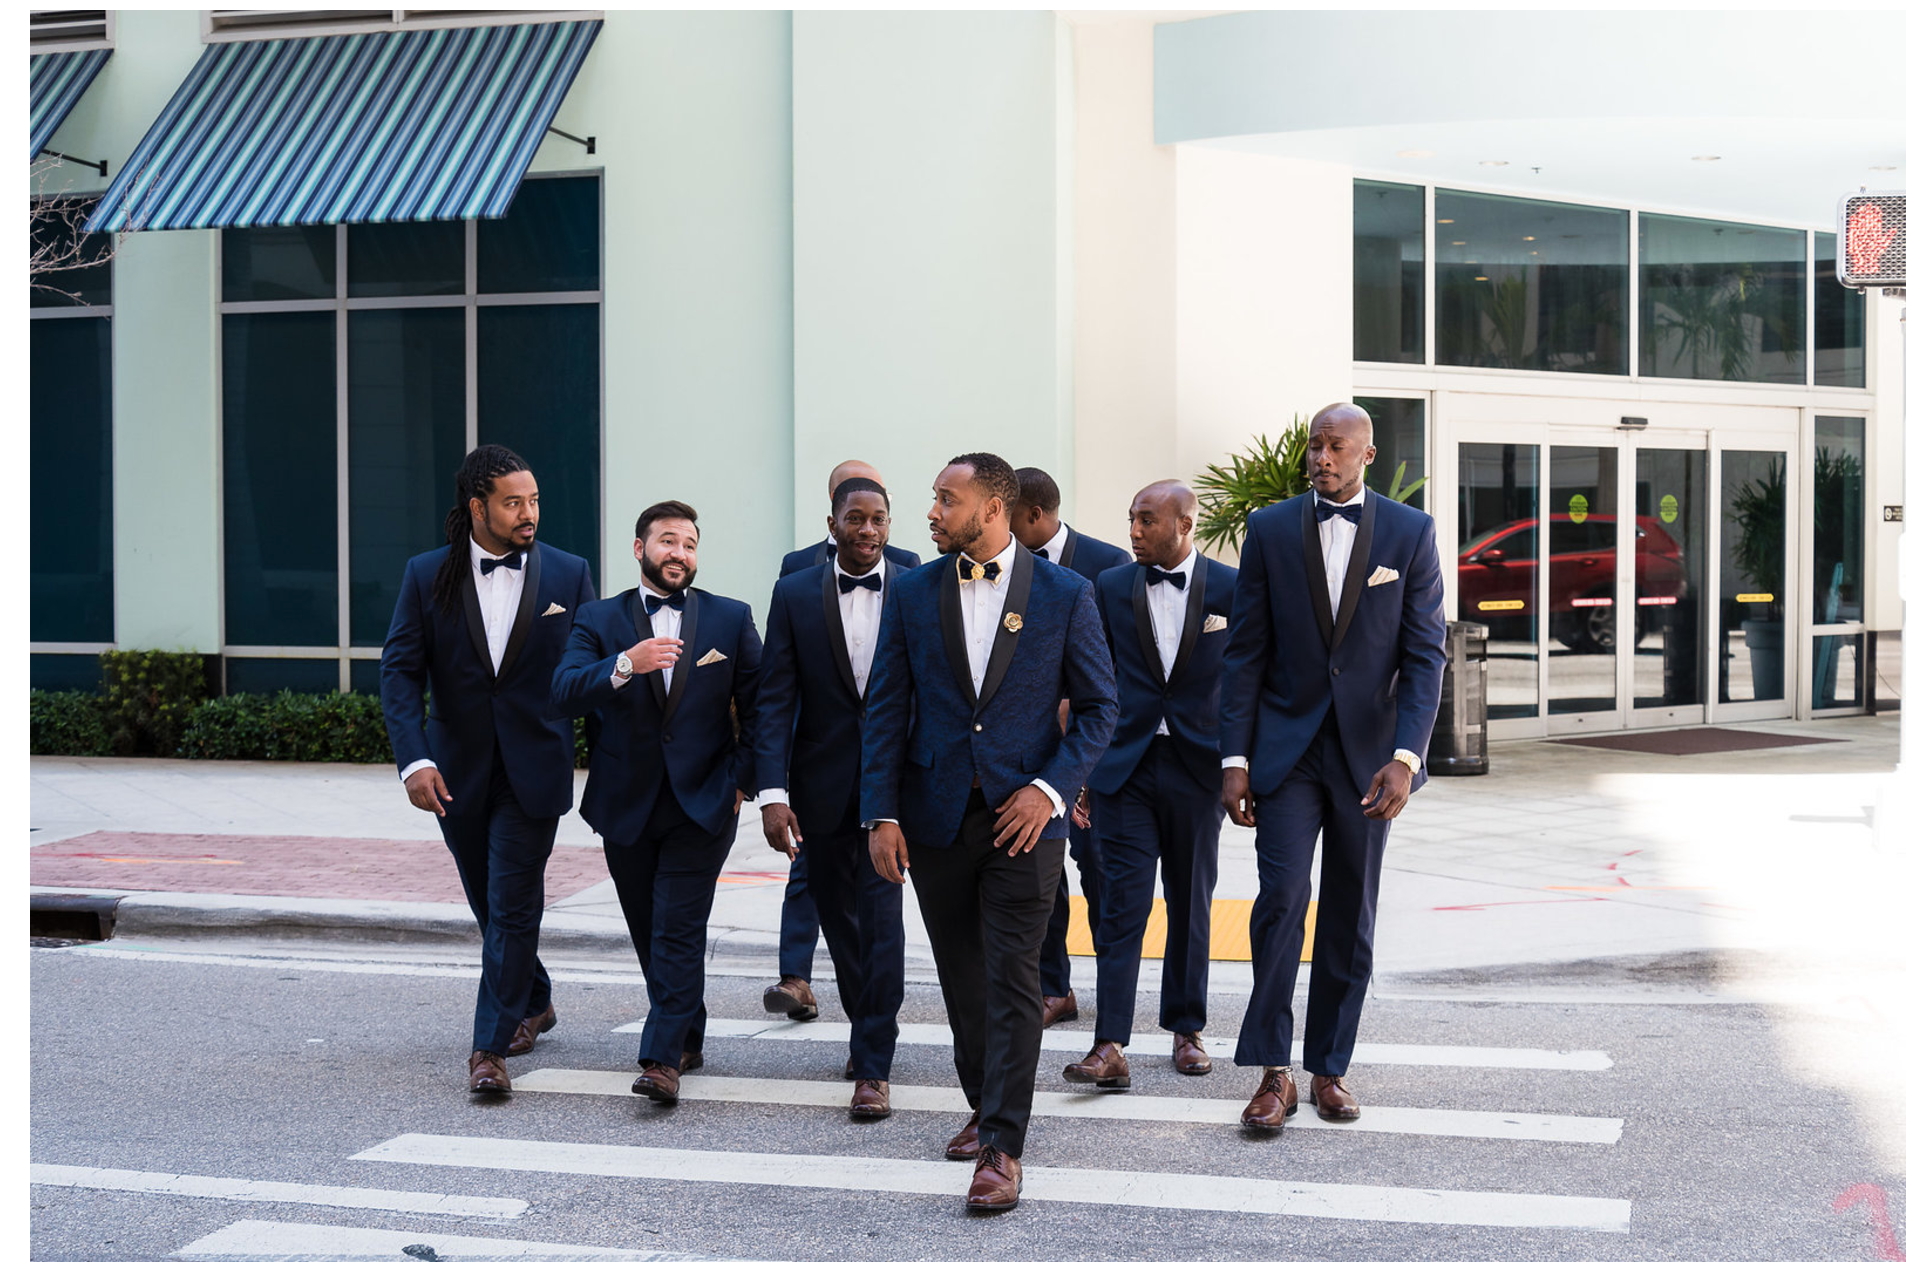 The Groom & His Men - See More